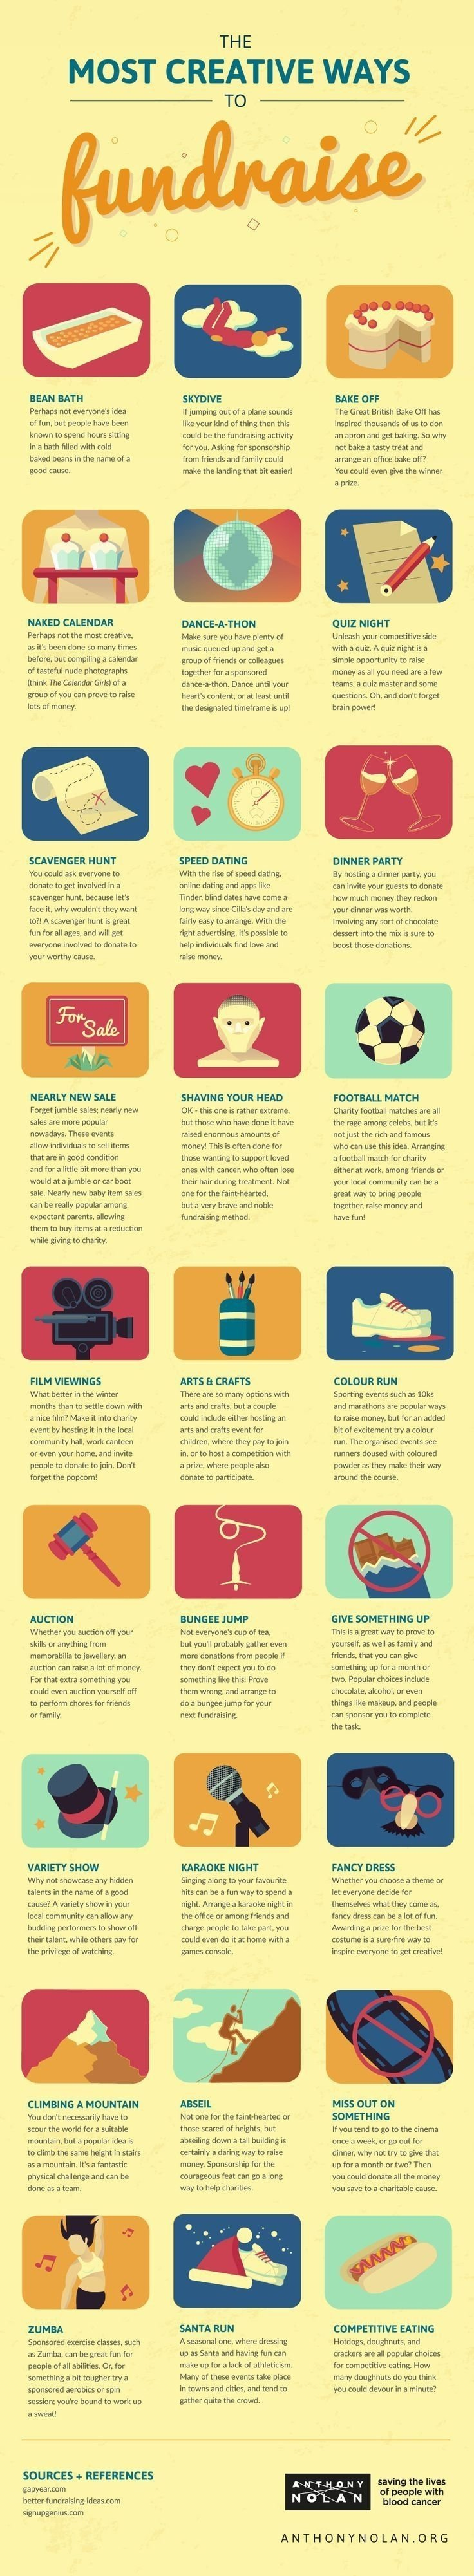 10 Attractive Creative Fundraising Ideas For Nonprofits 964 Best Images 2